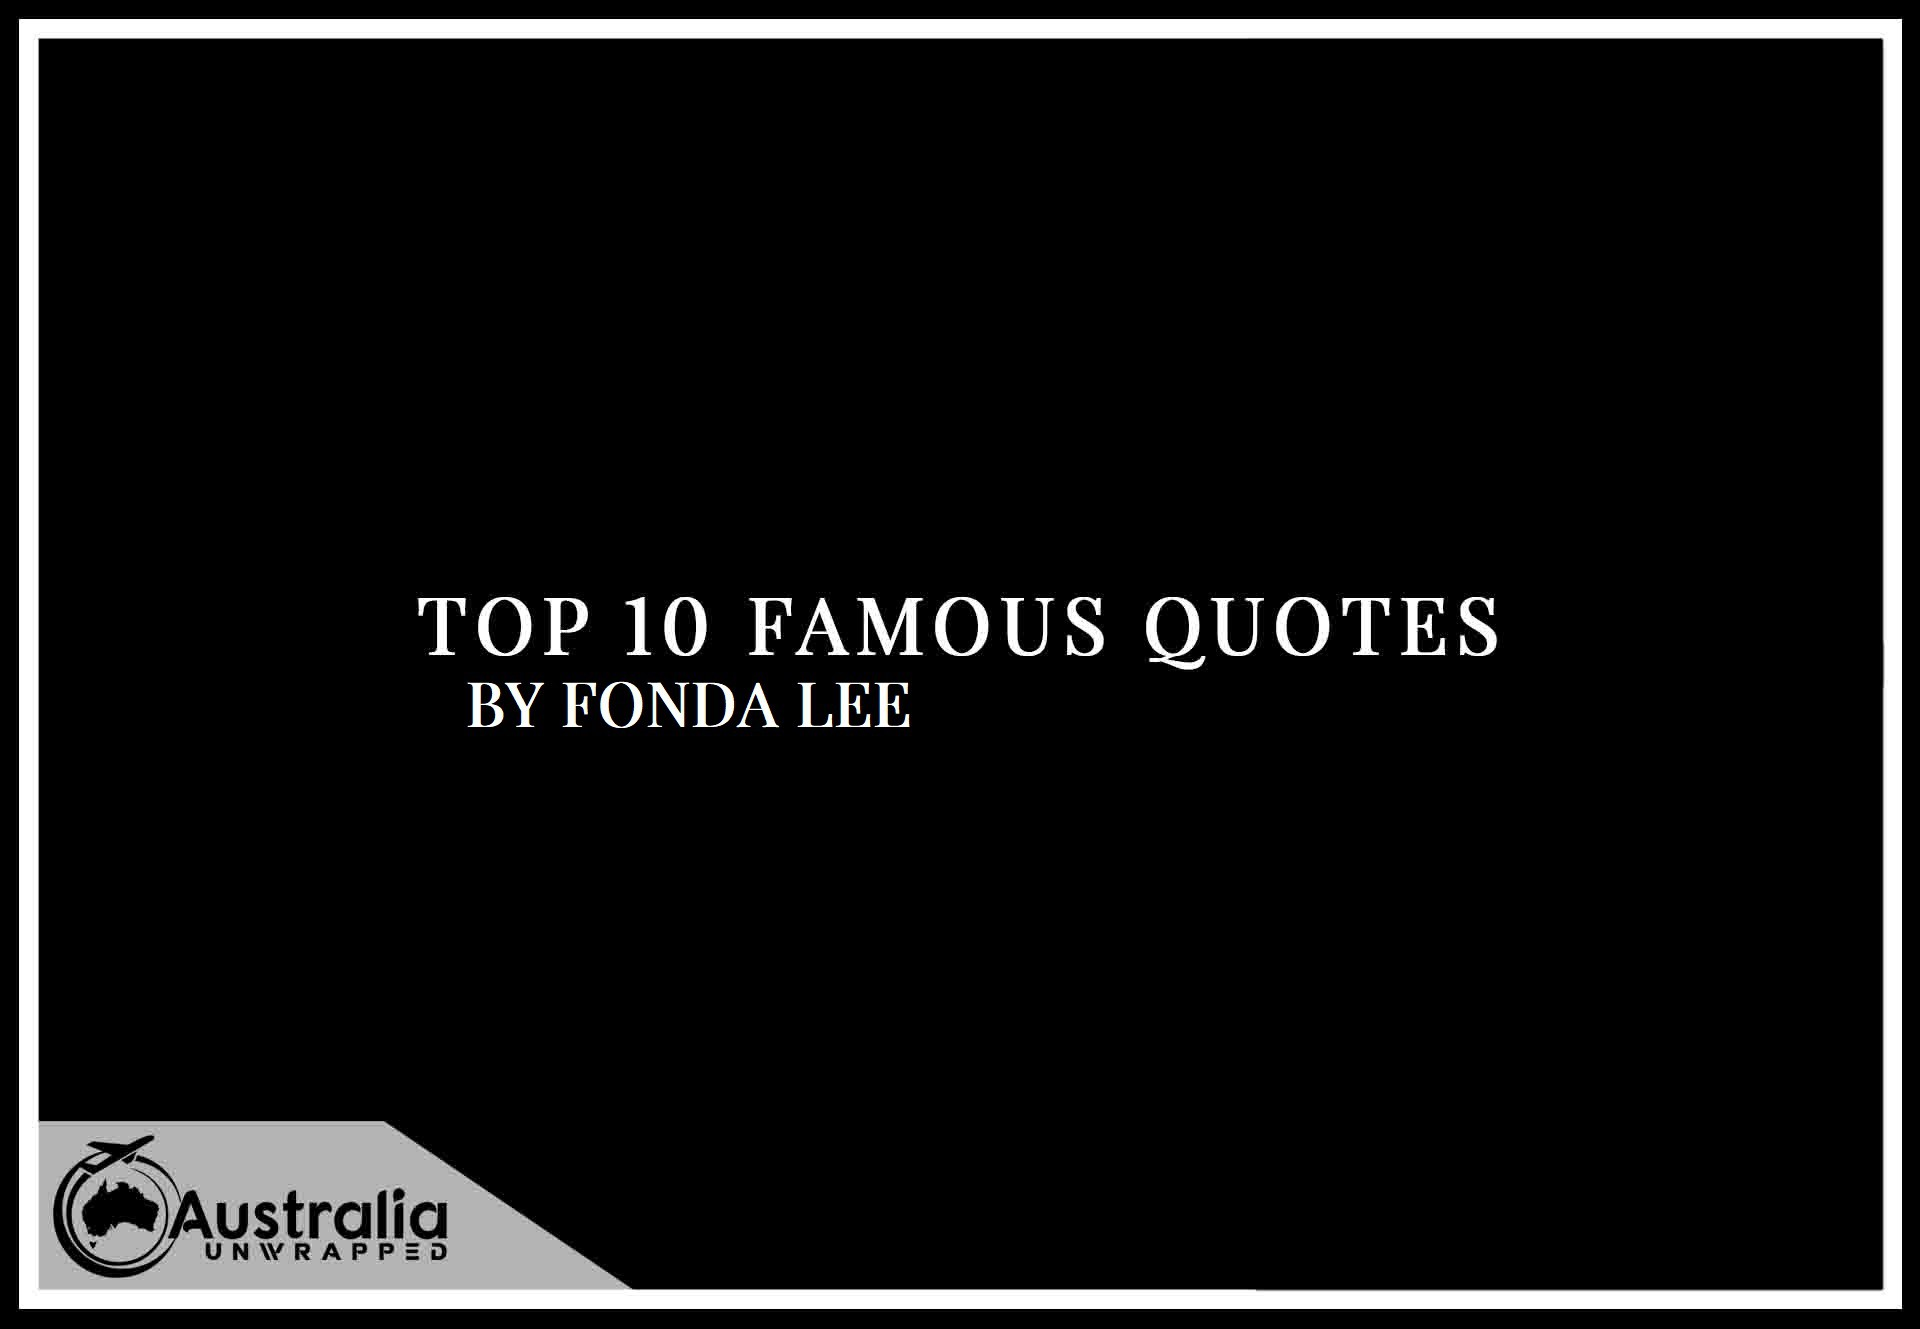 Top 10 Famous Quotes by Author Fonda Lee